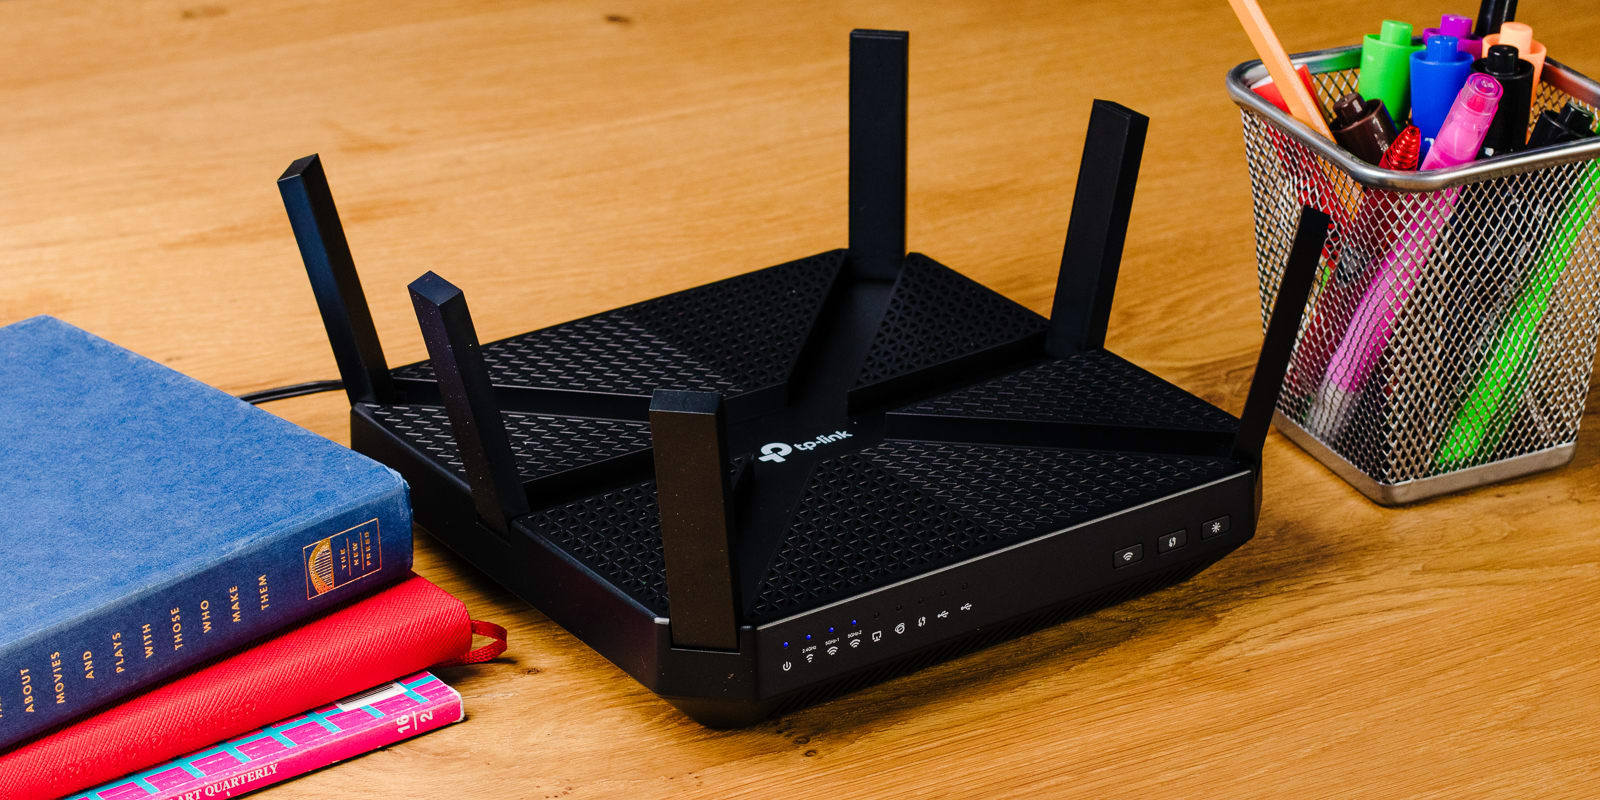 The best WiFi router